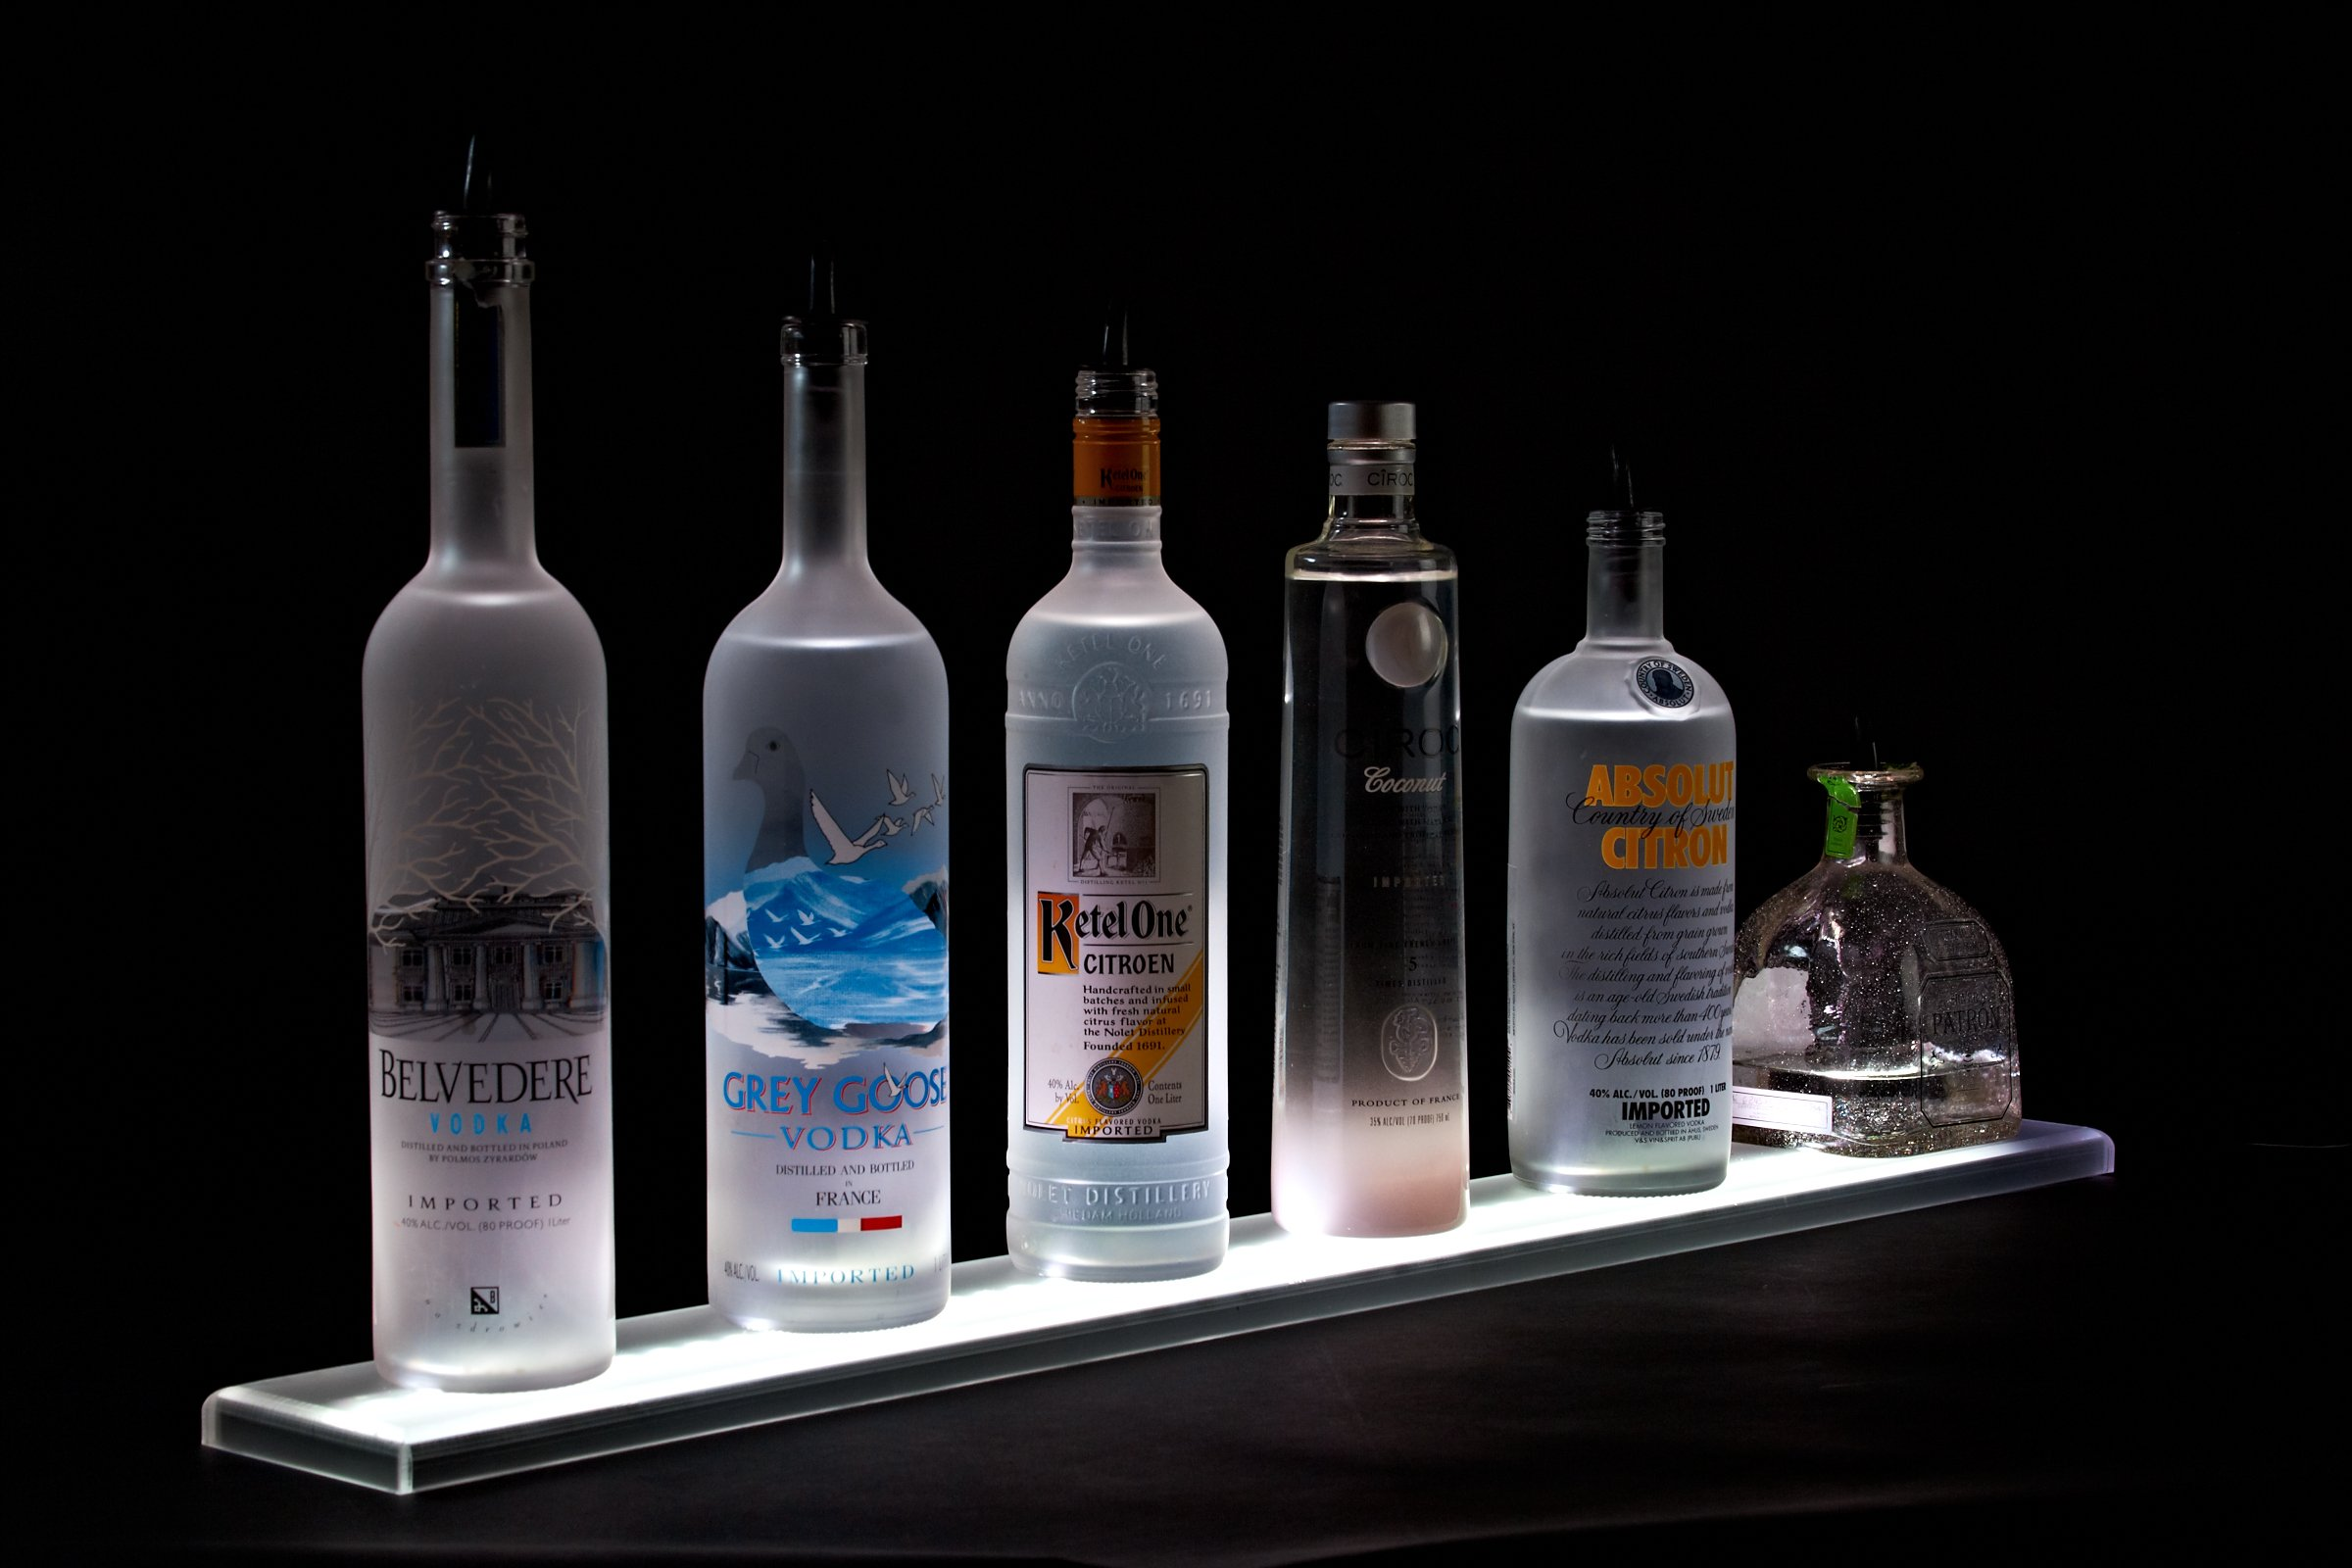 LED Liquor Shelf and Bottle Display (3 ft Length) - Programmable Shelving Includes Wall Mount Brackets, Wireless Remote, and Power Supply - COMFORTABLY HOLDS 7 - 9 BOTTLES by Armana Productions